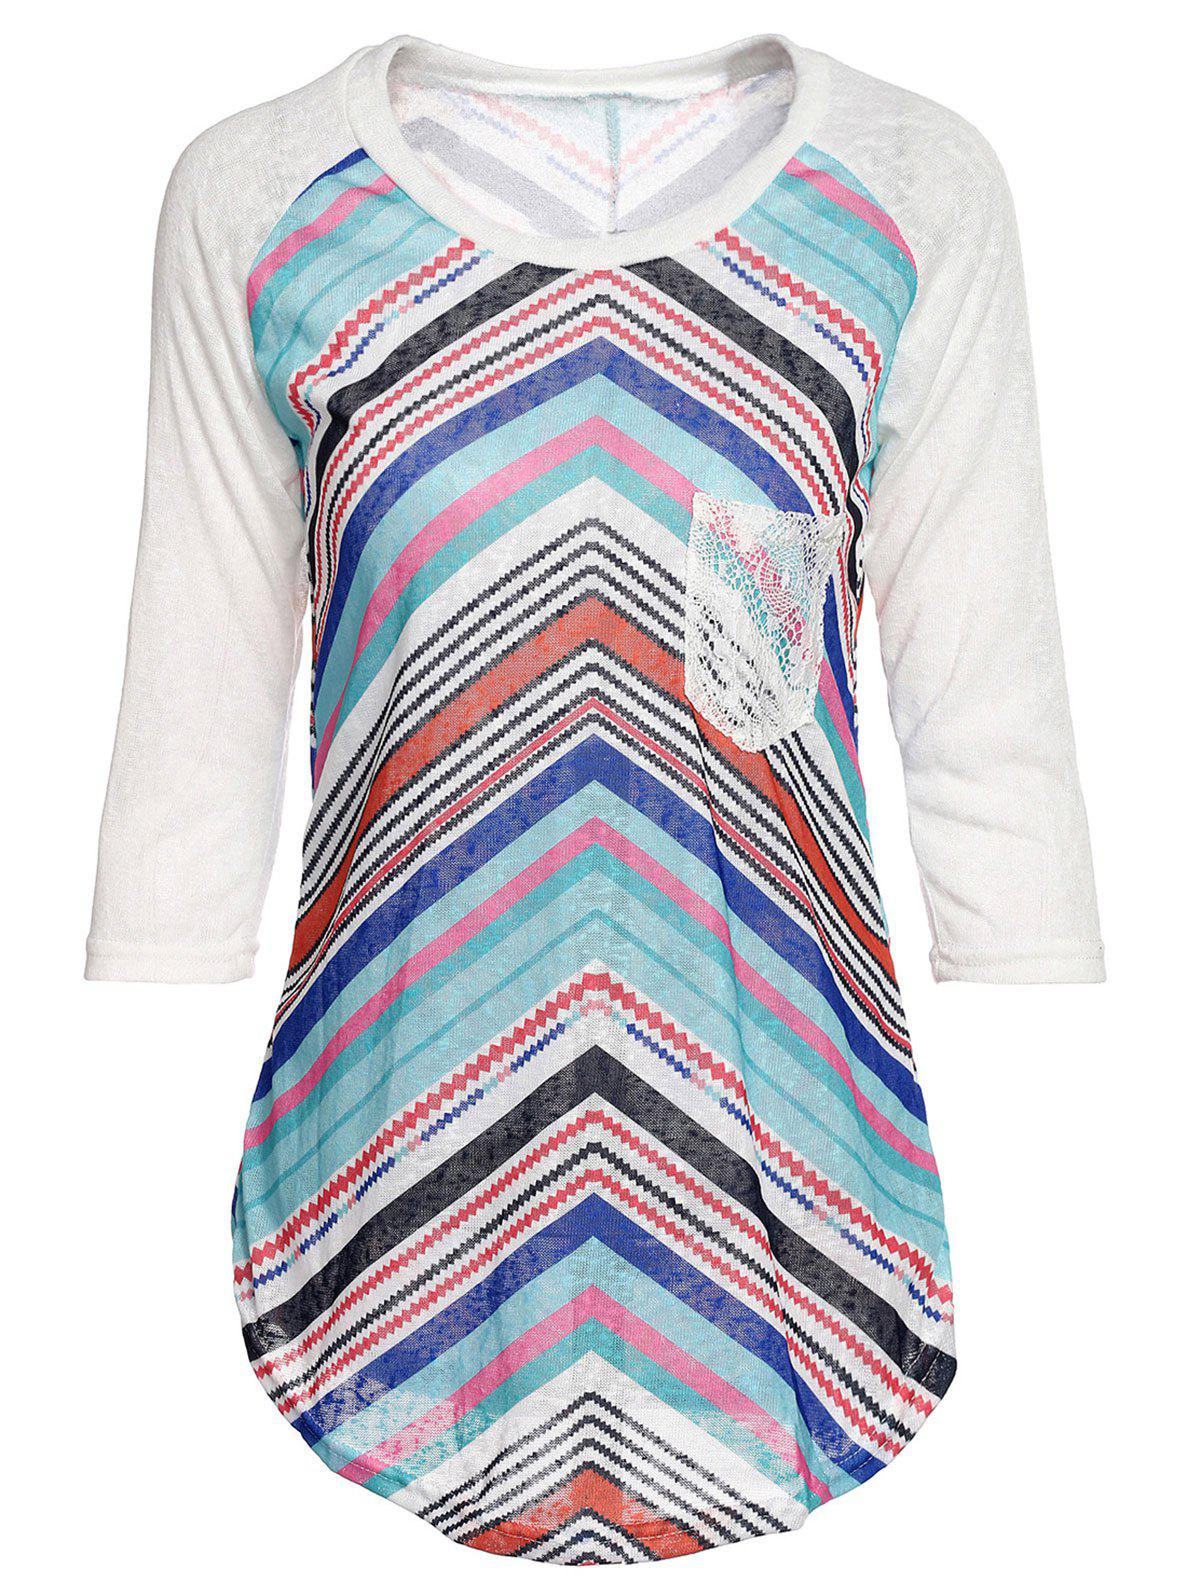 Concise Lace Spliced Sleeve Zigzag Print T-Shirt For Women